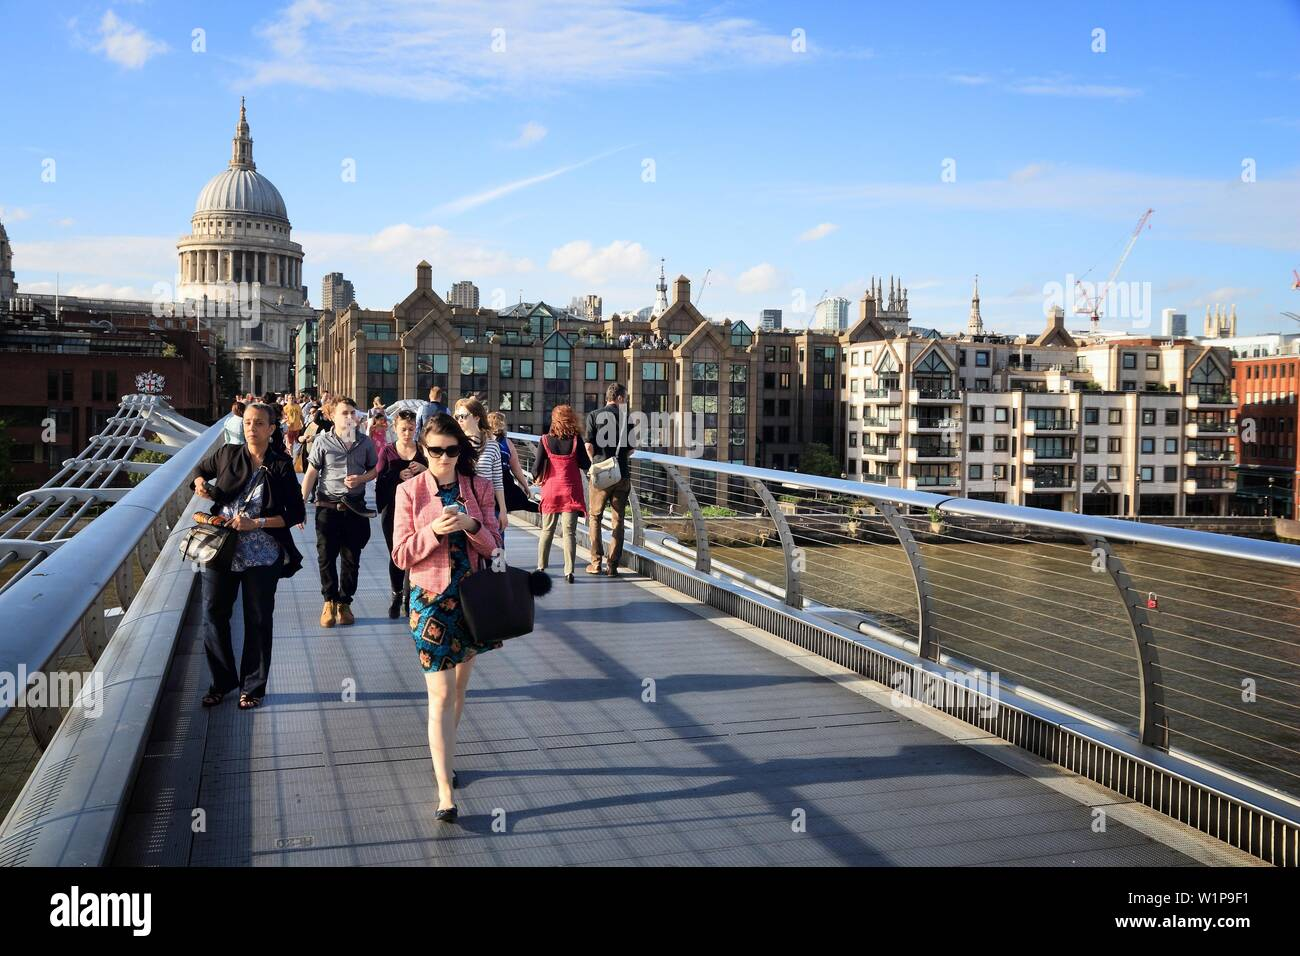 LONDON, UK - JULY 8, 2016: People cross the Millennium Bridge in the UK. London is the most populous city in the UK with 13 million people living in i - Stock Image